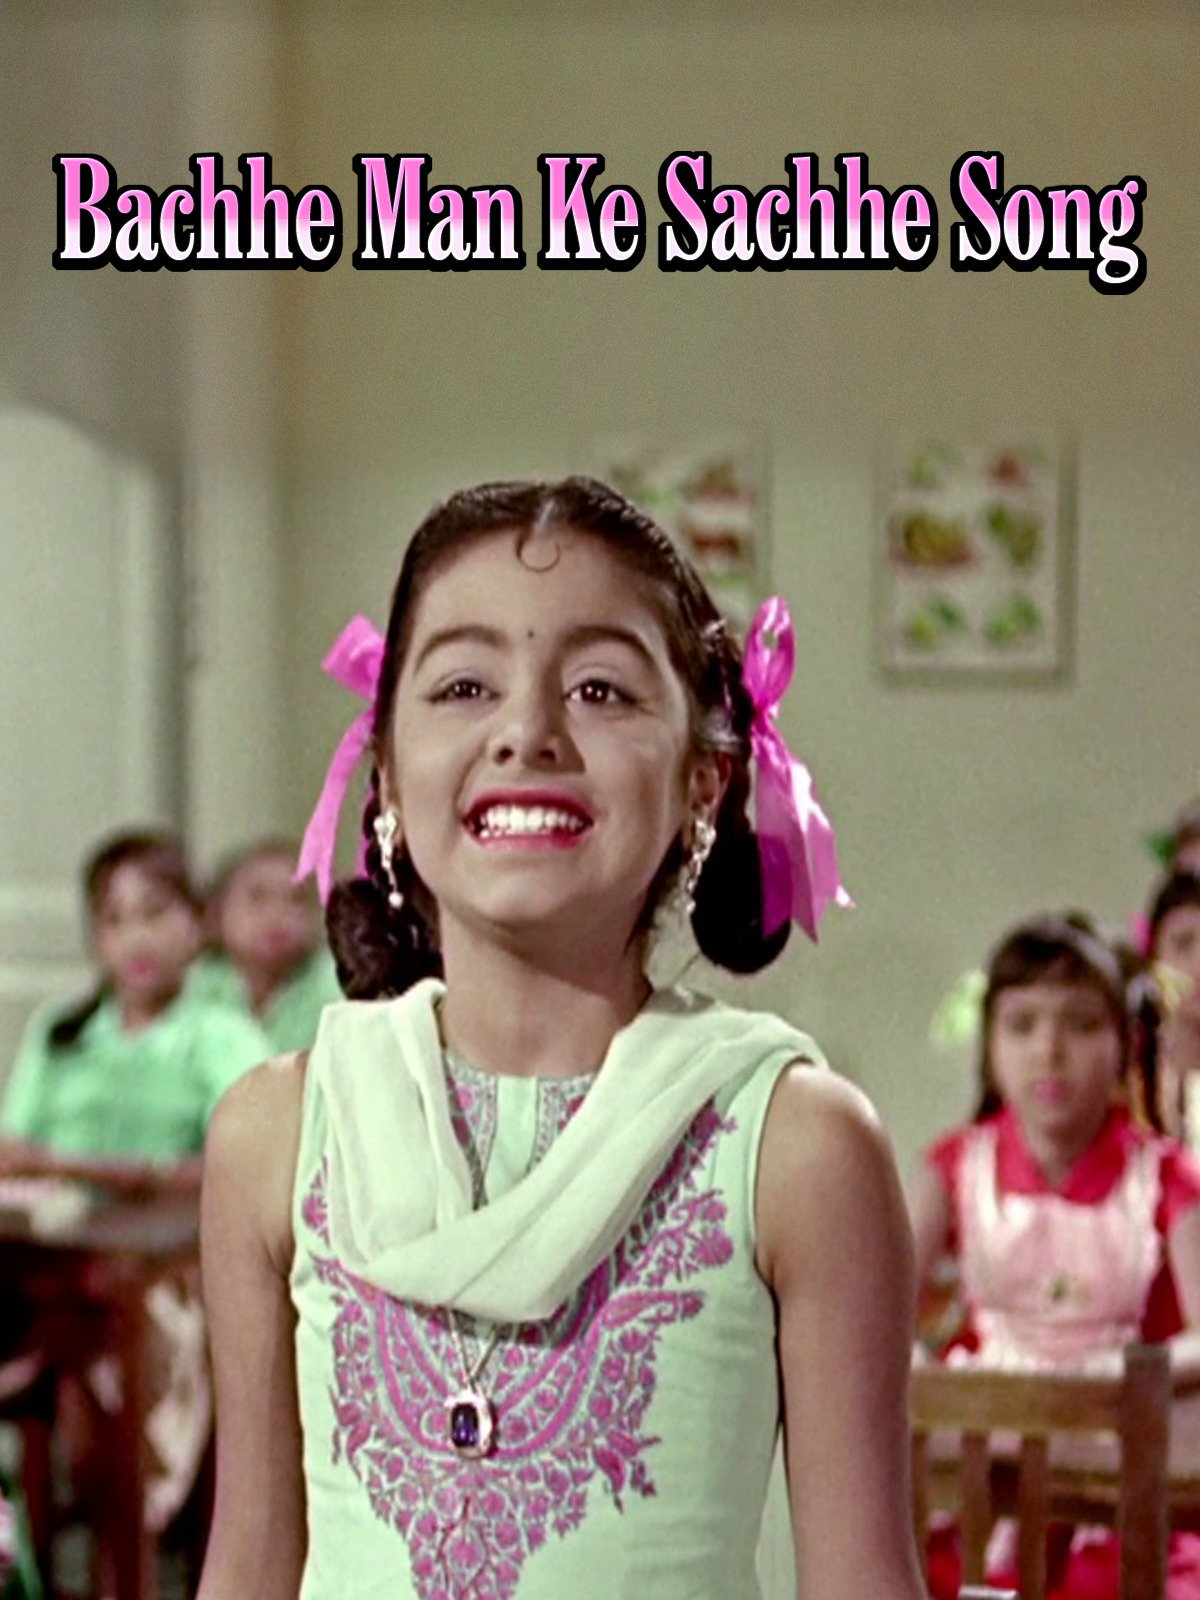 Bachhe Man Ke Sachhe Song